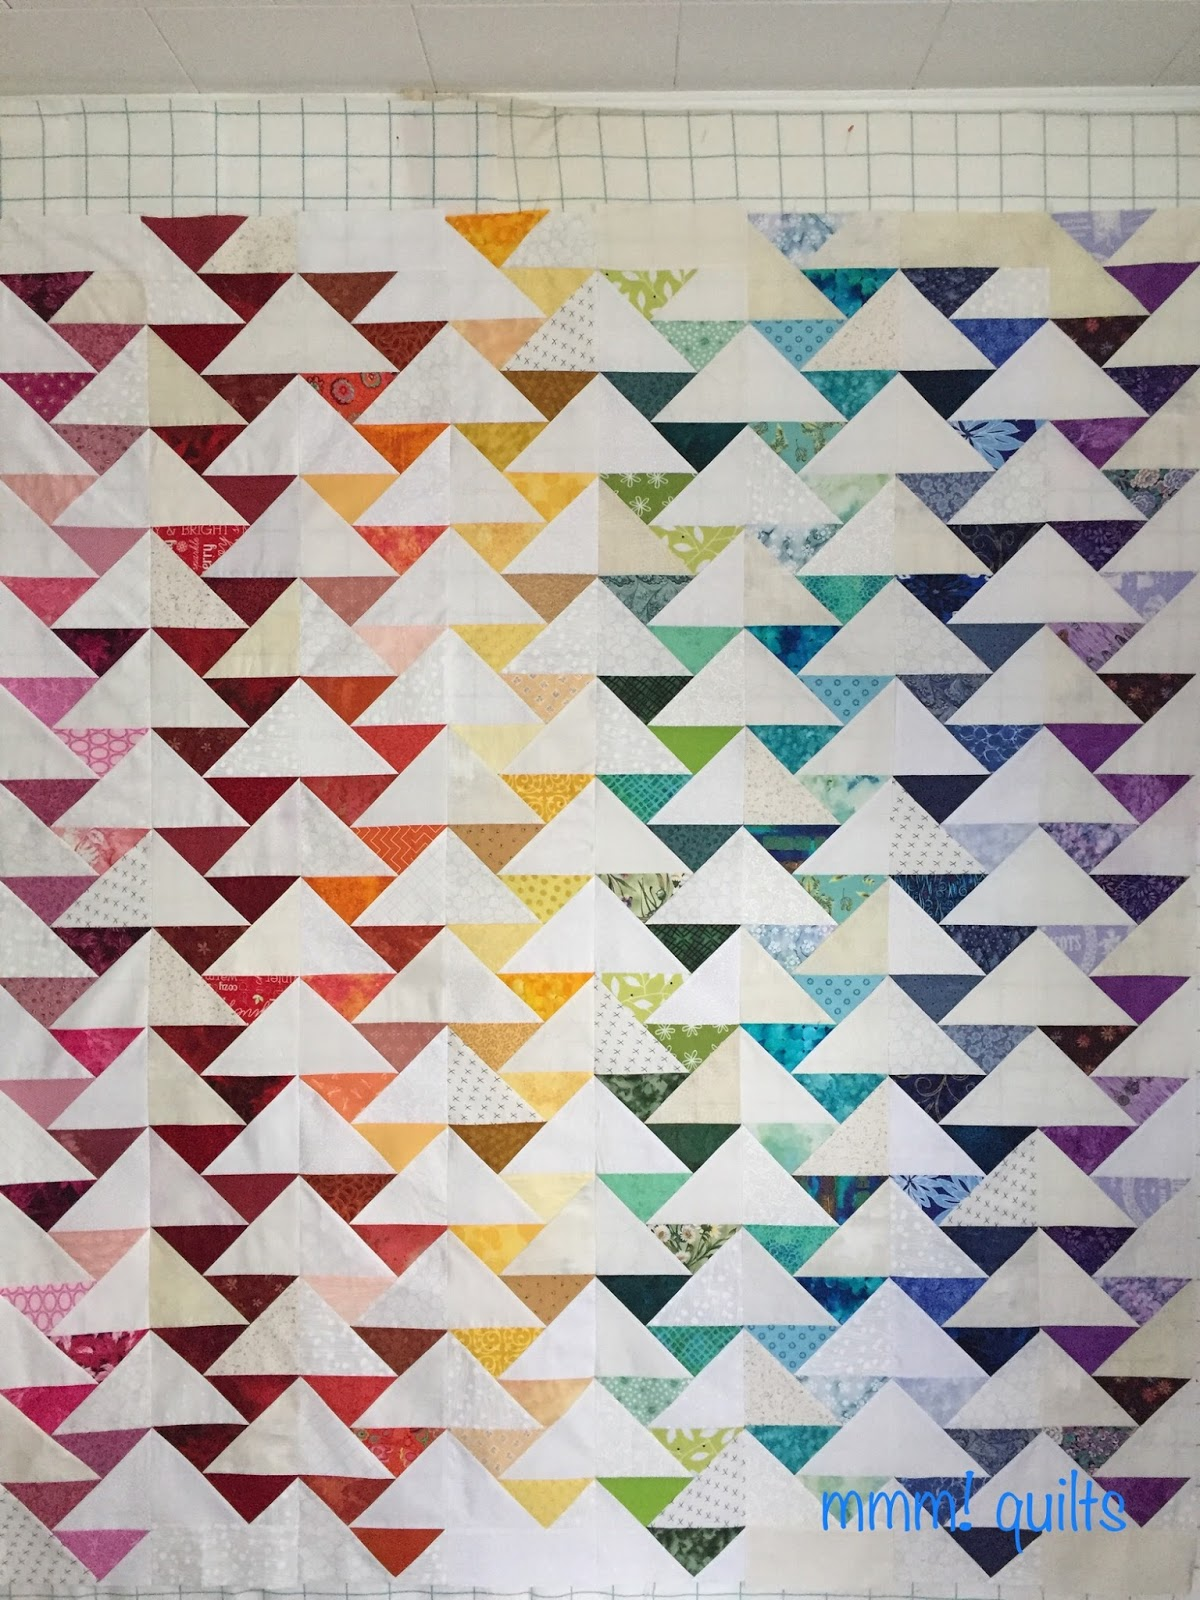 Musings of a Menopausal Melon - mmm! quilts: Migrating Geese Flimsy : migrating geese quilt pattern - Adamdwight.com